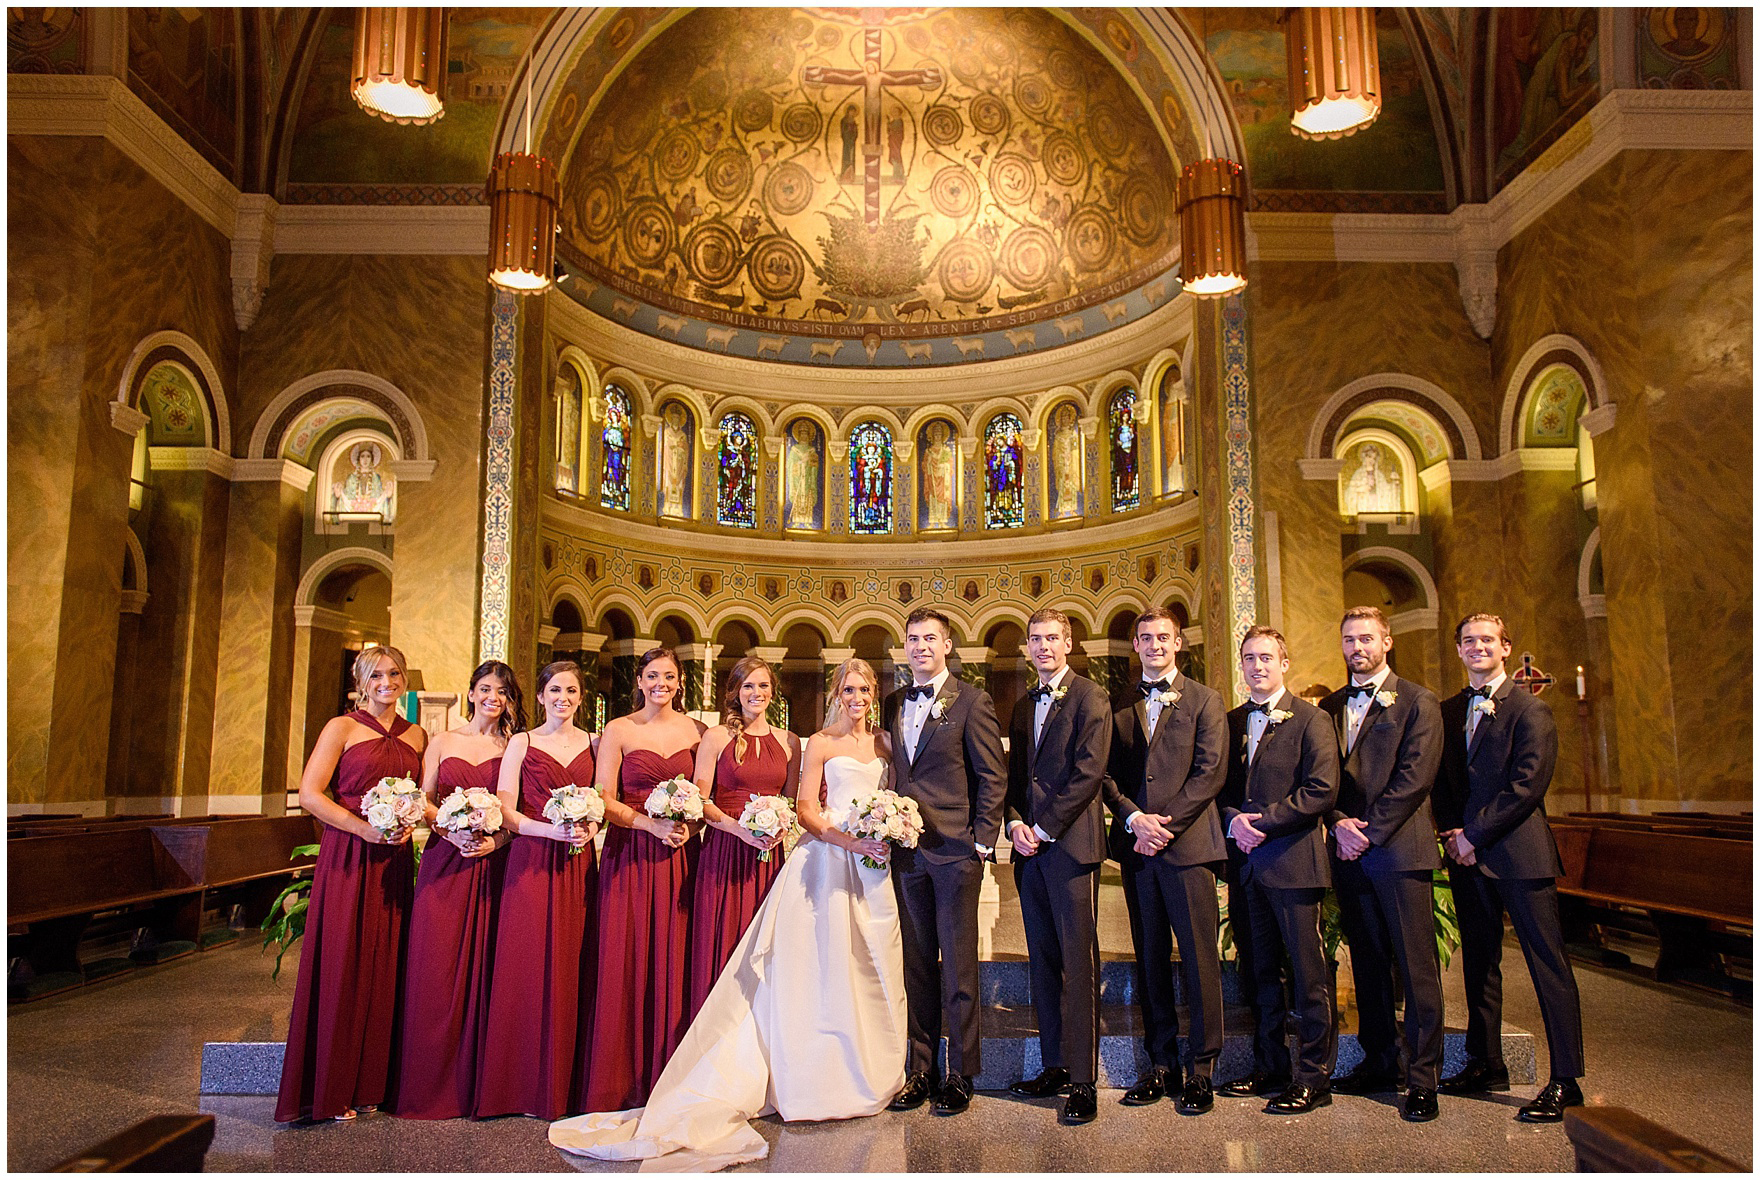 The entire bridal party poses on the altar of the church during a St. Clement Germania Place Chicago wedding.